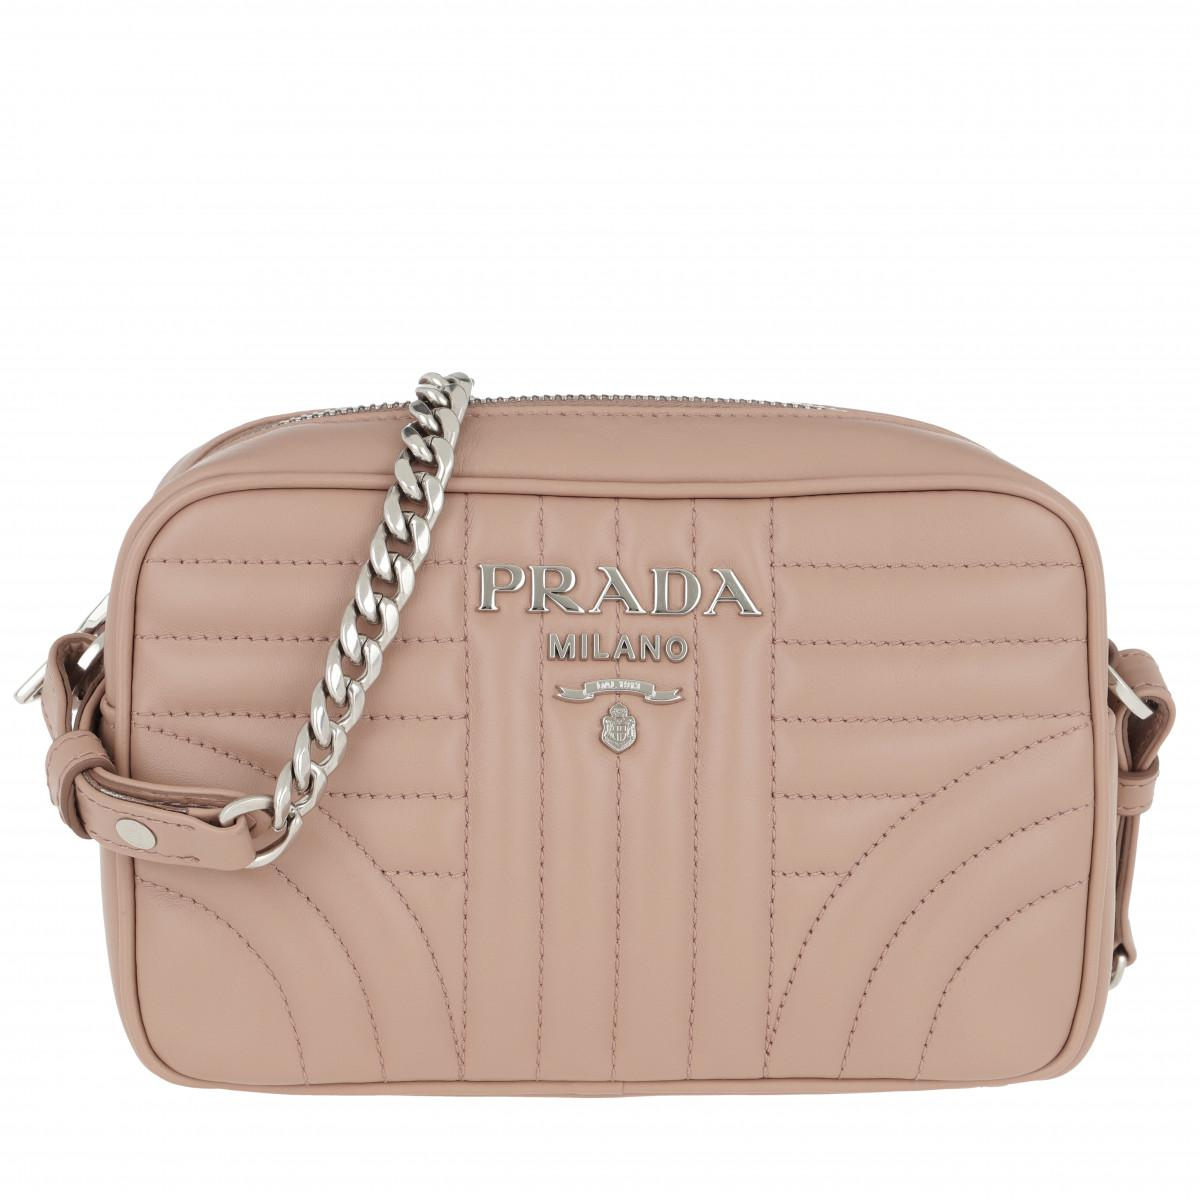 e0a24365f7e601 Prada Diagramme Crossbody Bag 2 Leather Cipria in Natural - Lyst